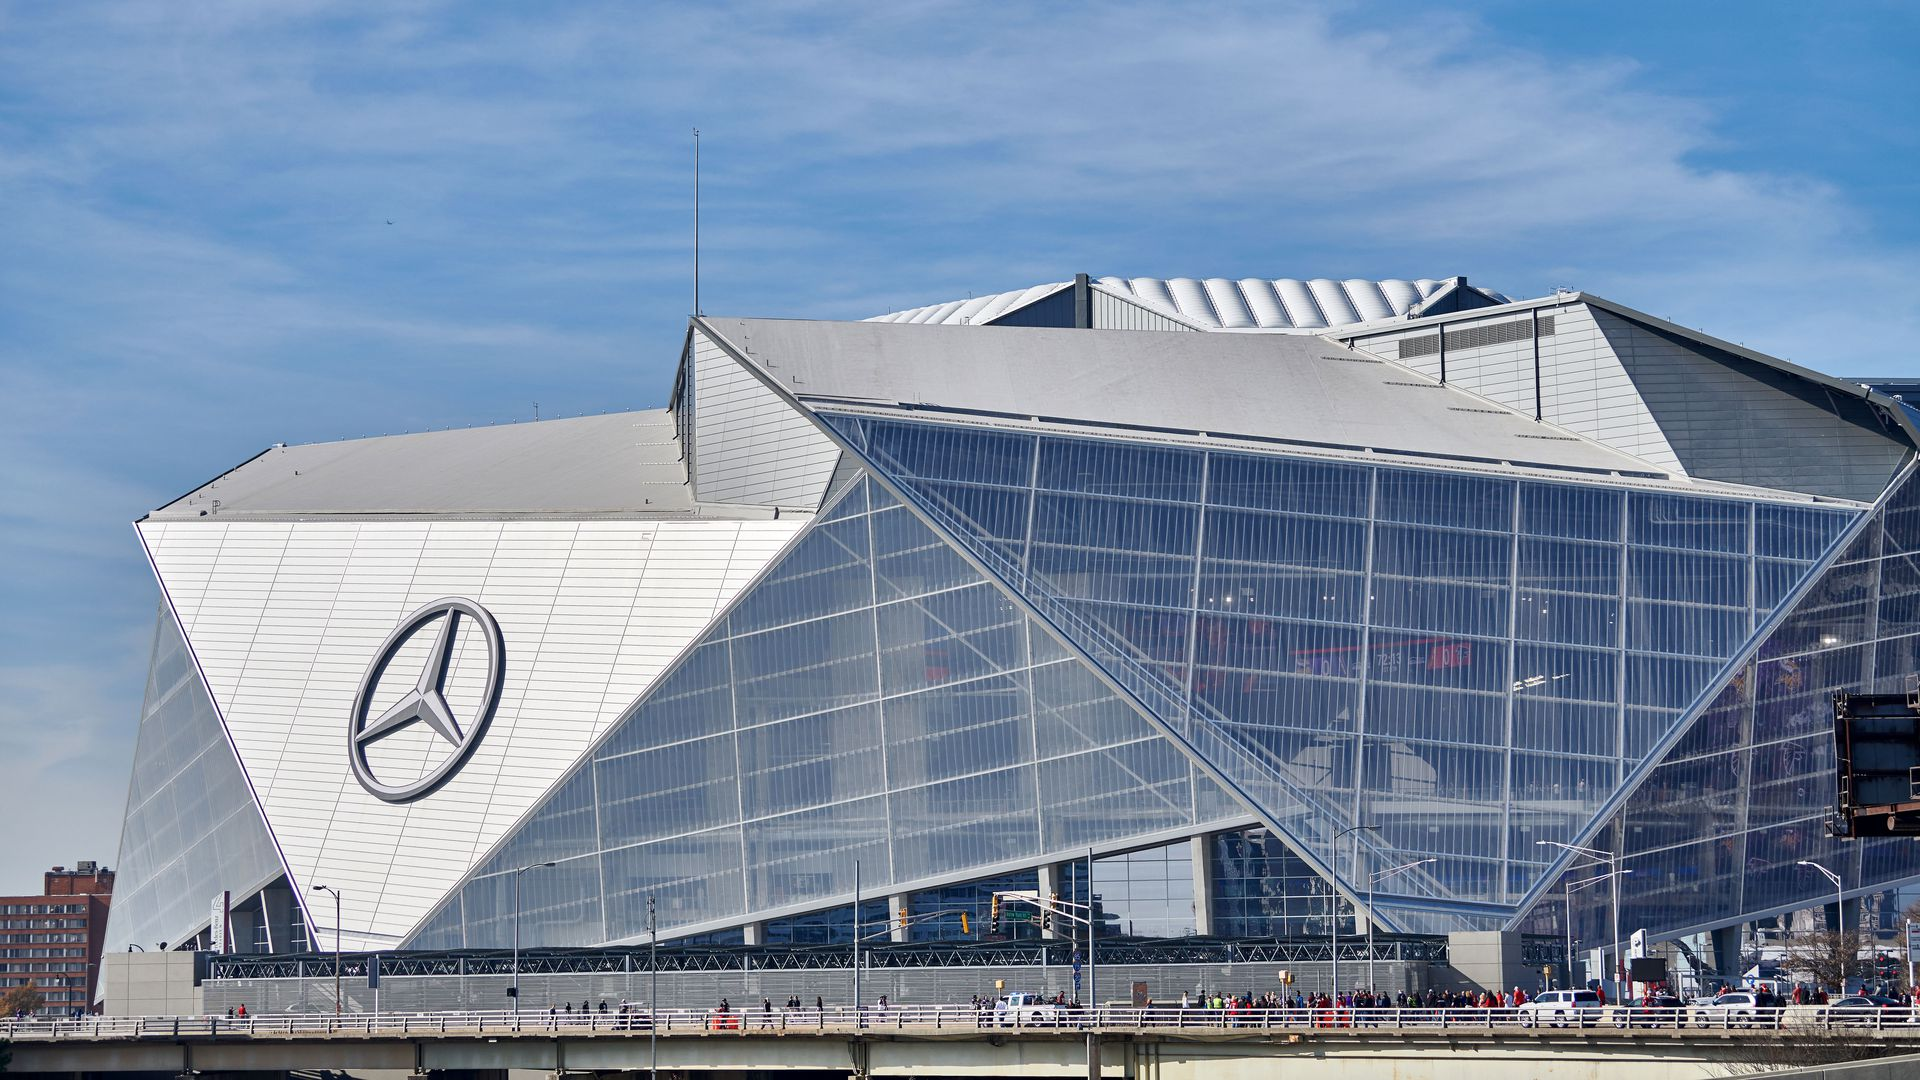 A general view of the exterior of the Mercedes-Benz Stadium is seen on the exterior of the Mercedes-Benz Stadium